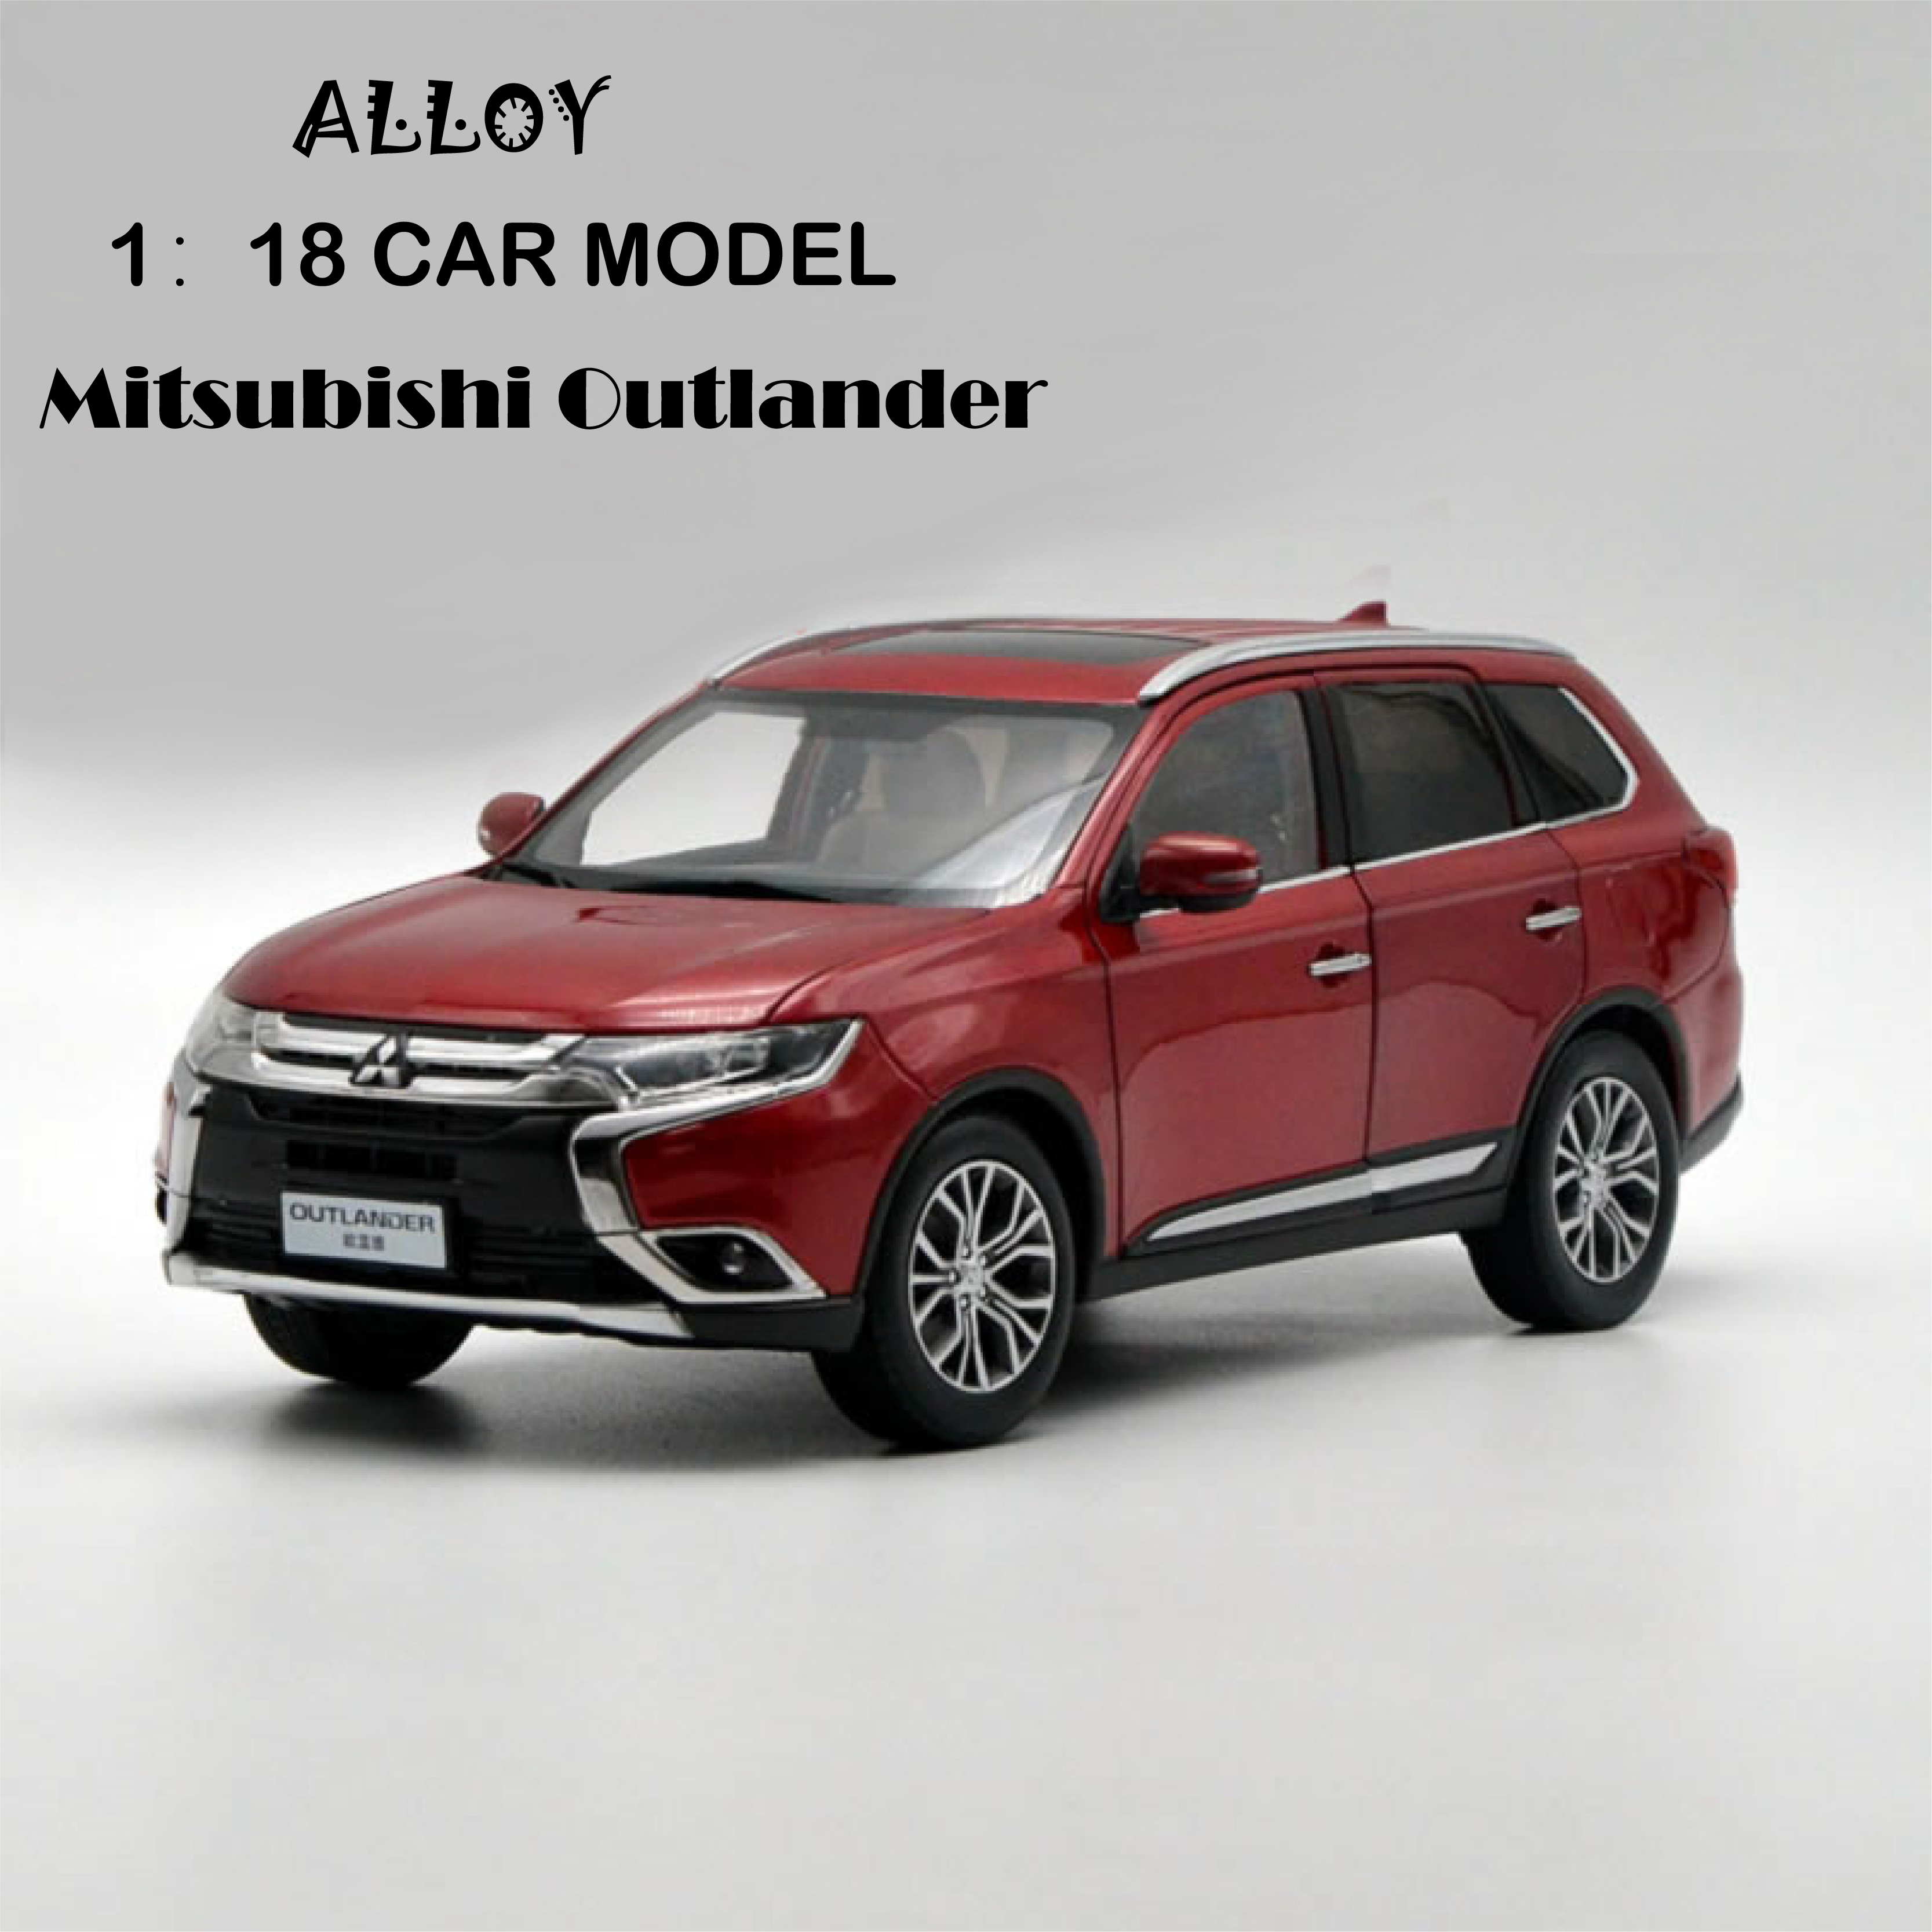 1:18 Scale Mitsubishi Outlander Alloy Diecast Metal Car Model Collection Diecast Model  Car Suit Toys For Children Birthday Gift